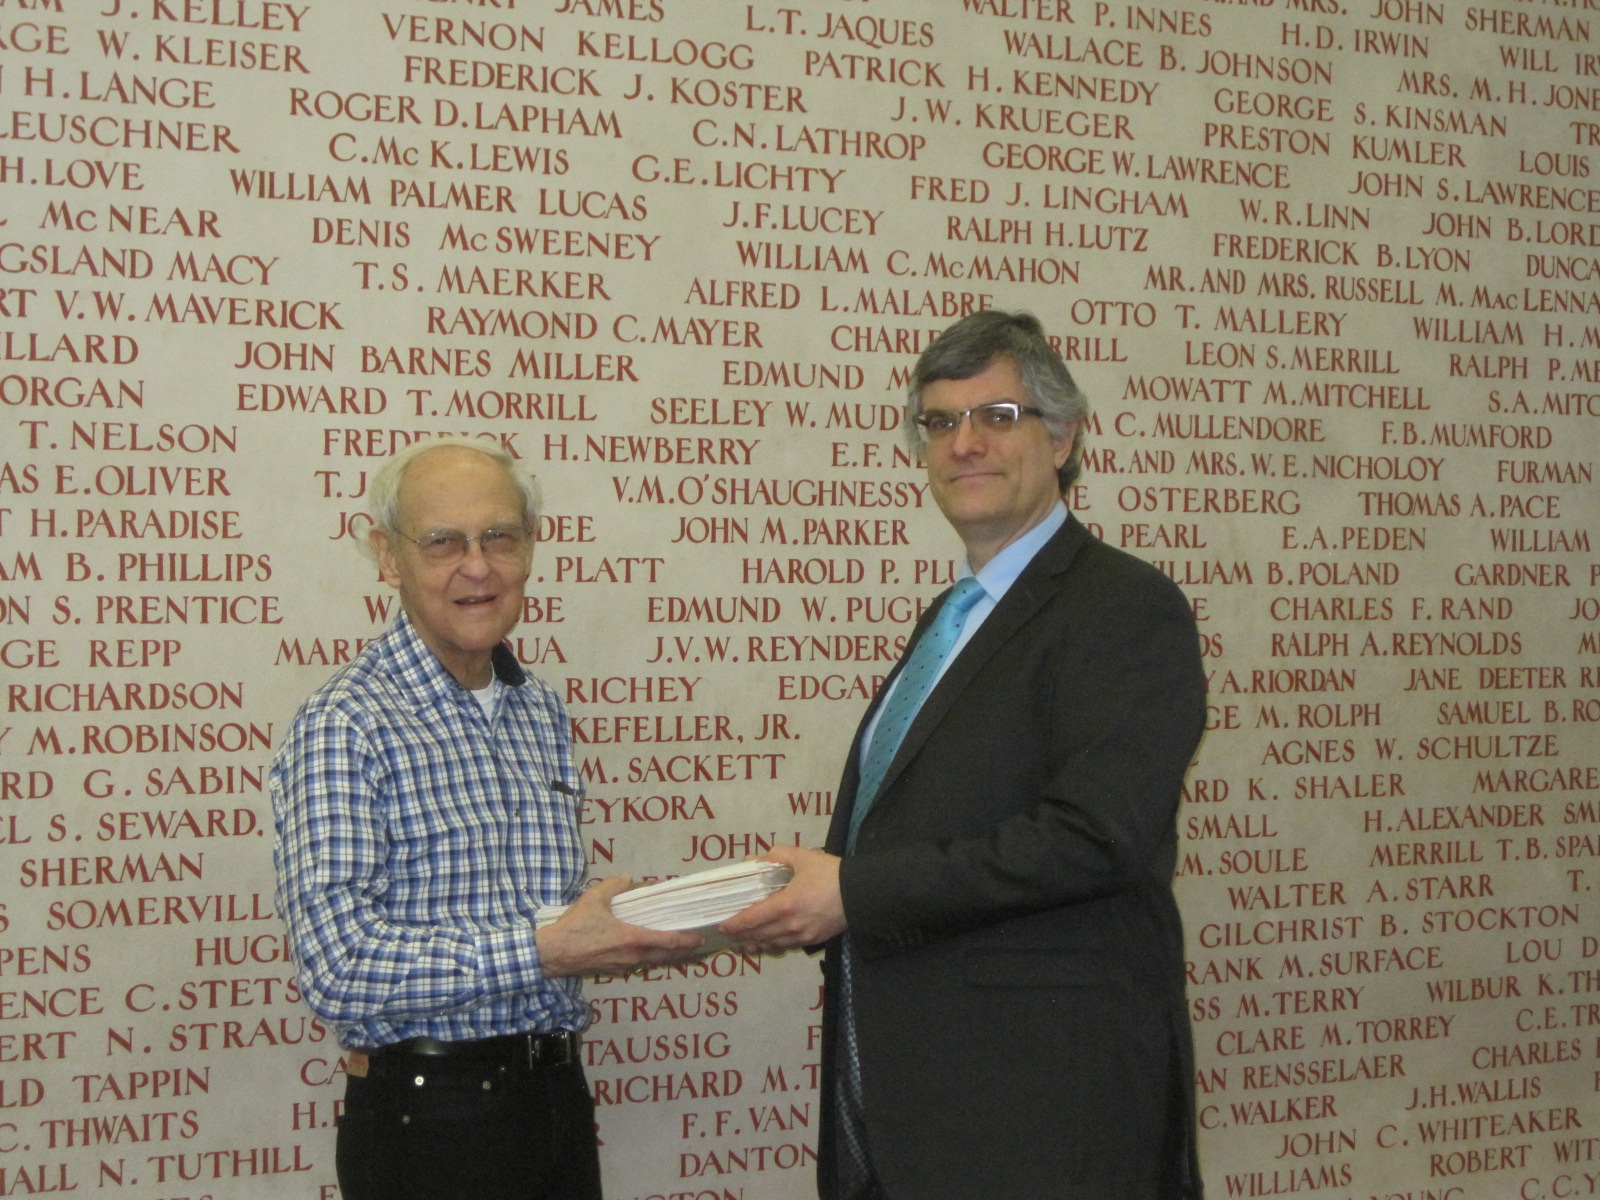 ITIC co-founder and Economic Adviser Charles McLure delivers materials on Tax Reform in Kazakhstan to Anatol Shmelev, the Robert Conquest Curator for Russia and Eurasia at Stanford University's Hoover Institution Archives.